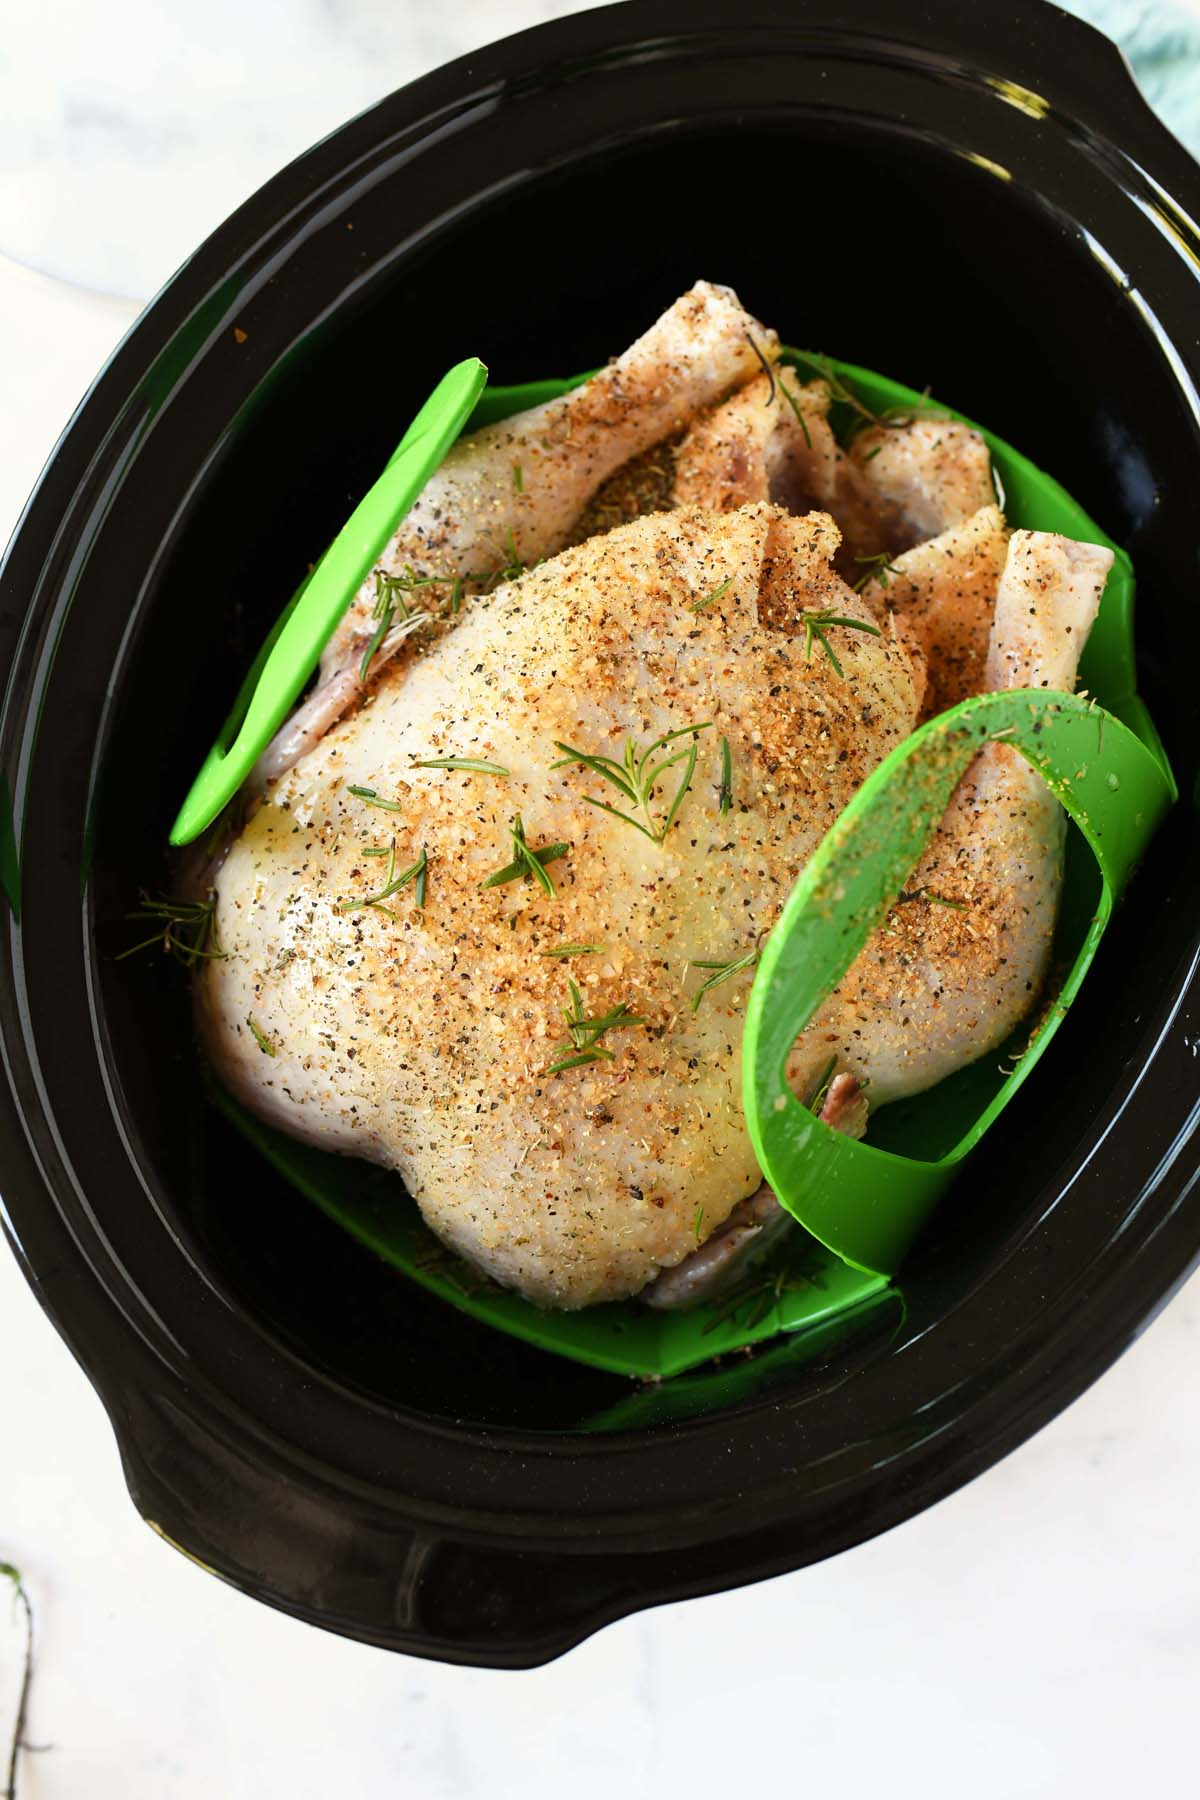 Whole seasoned chicken on a green sling in the slow cooker.